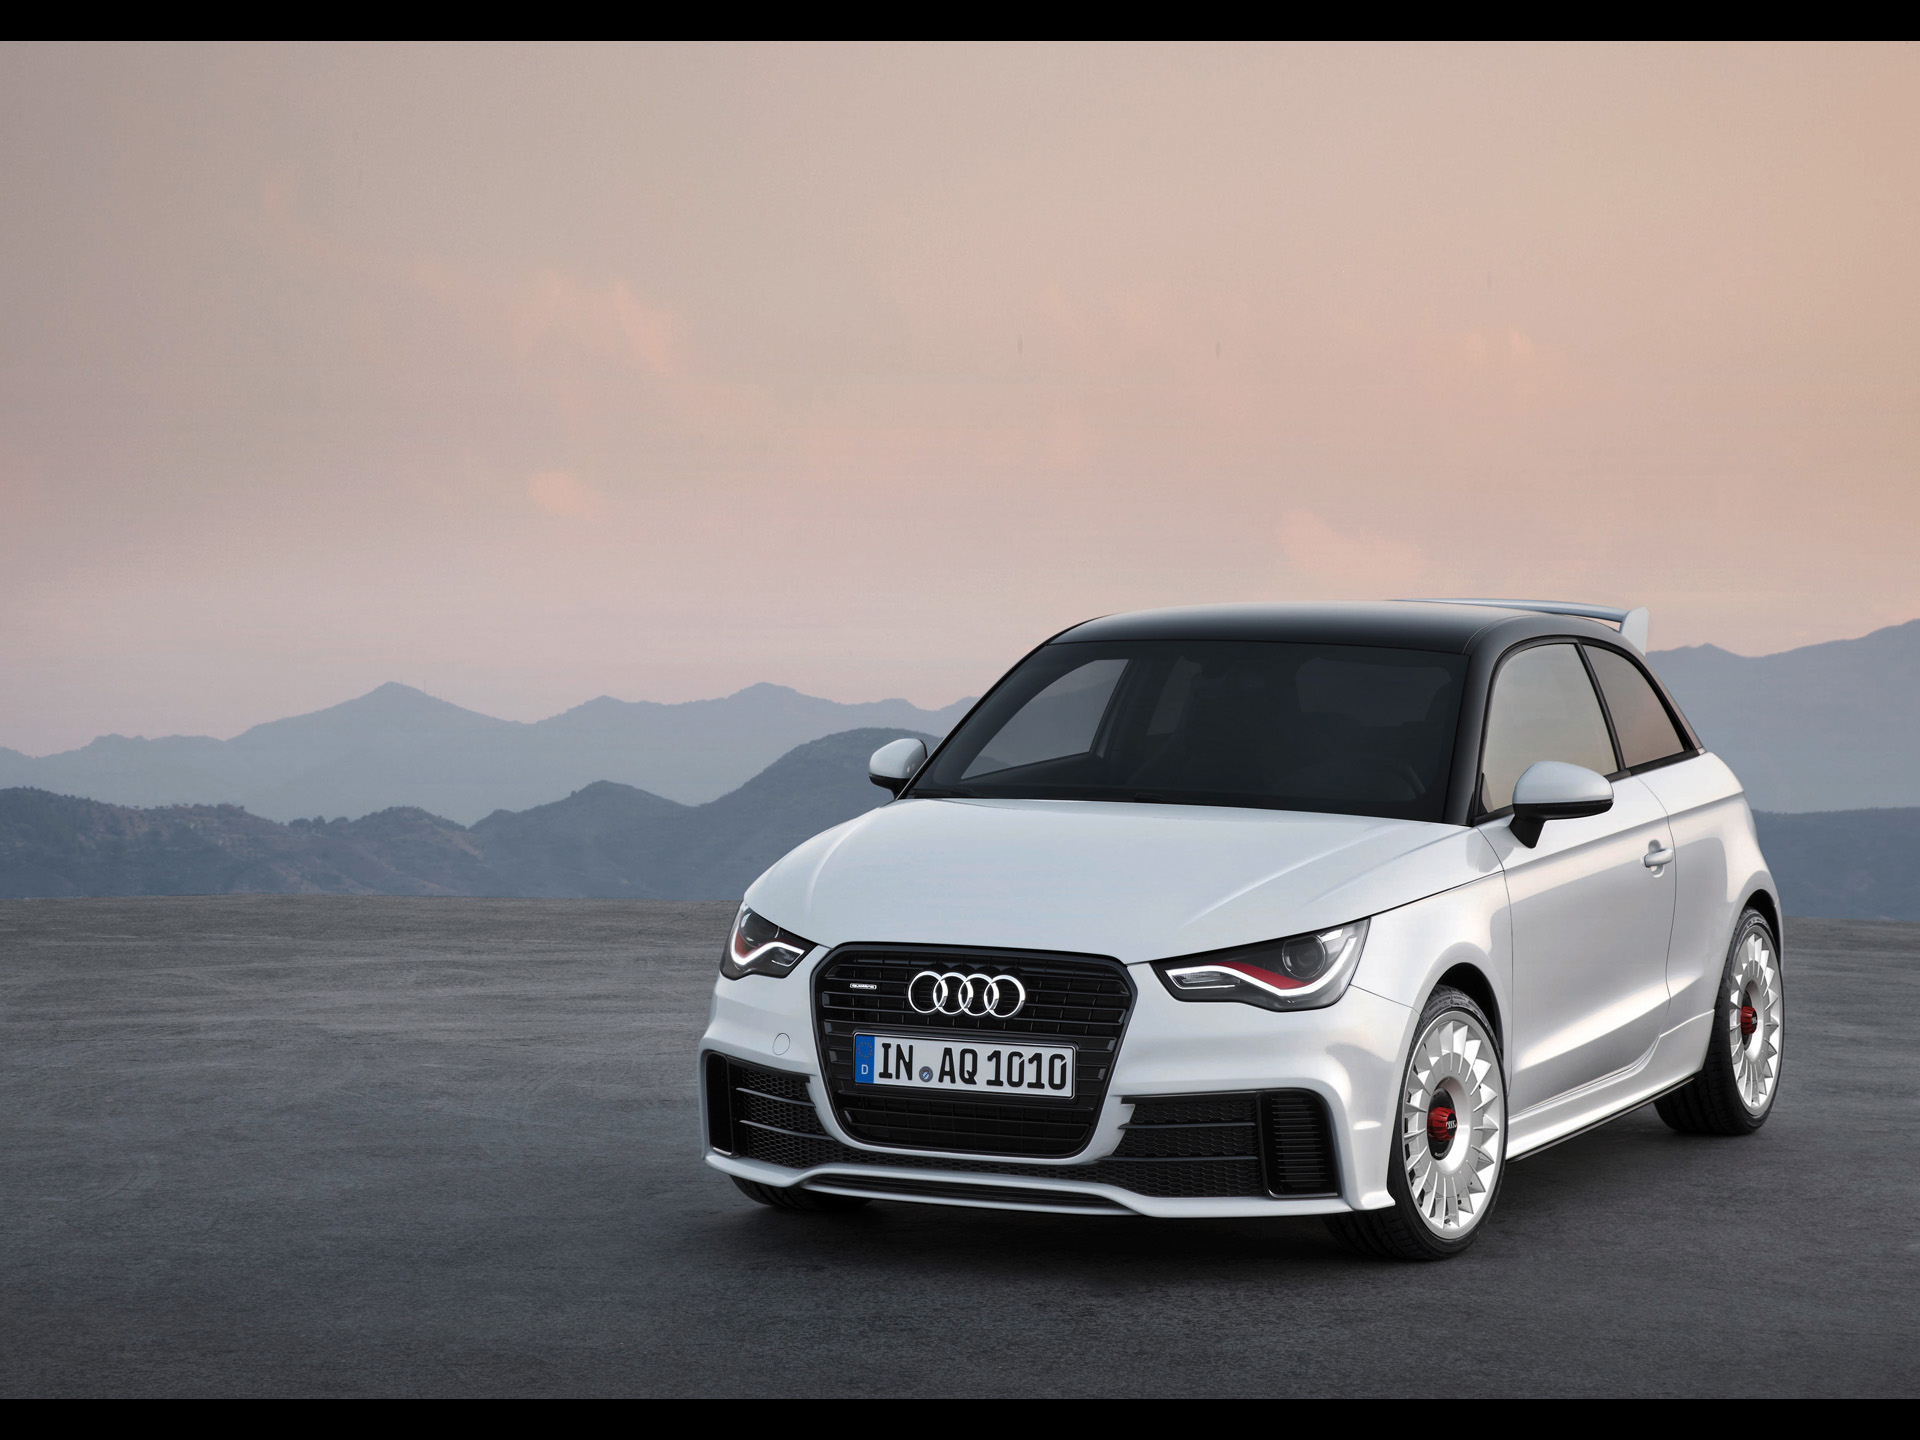 1920x1440 - Audi A1 Wallpapers 6